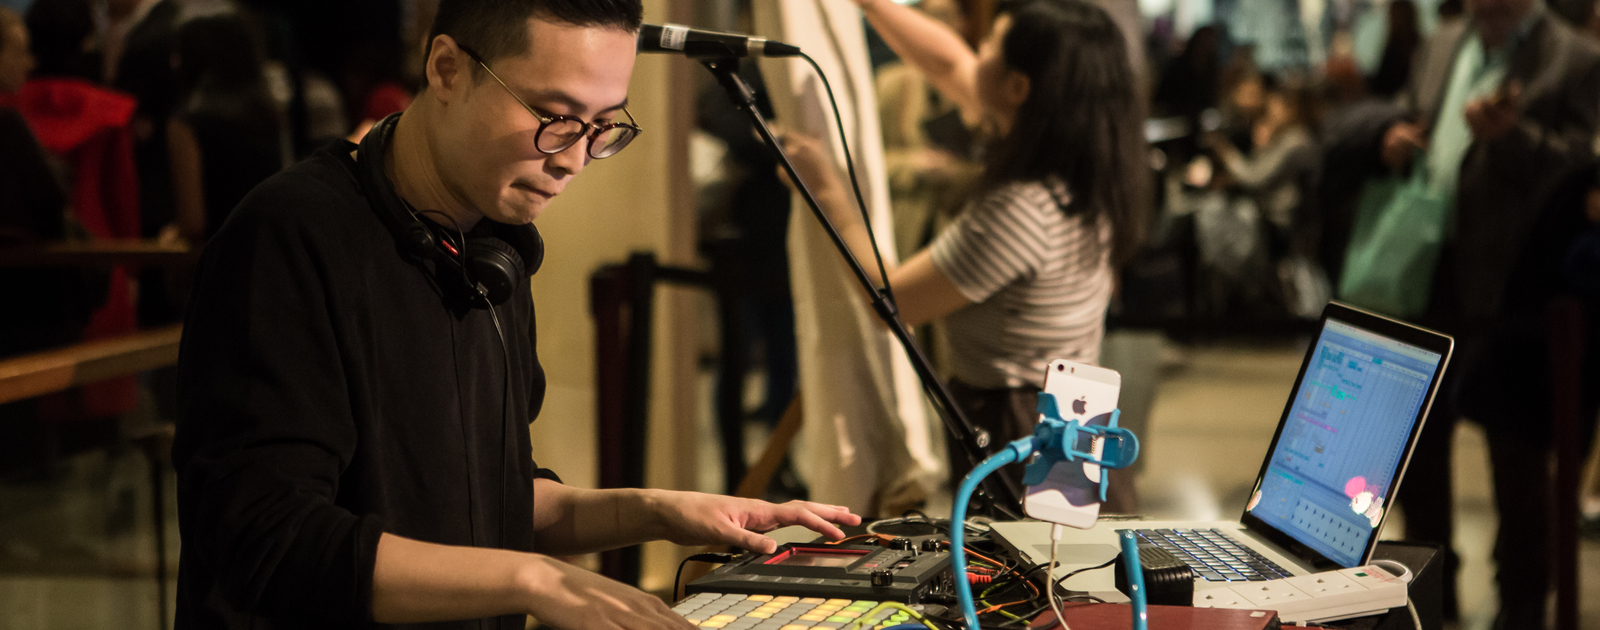 Andy Leung: artist, songwriter, DJ, and producer